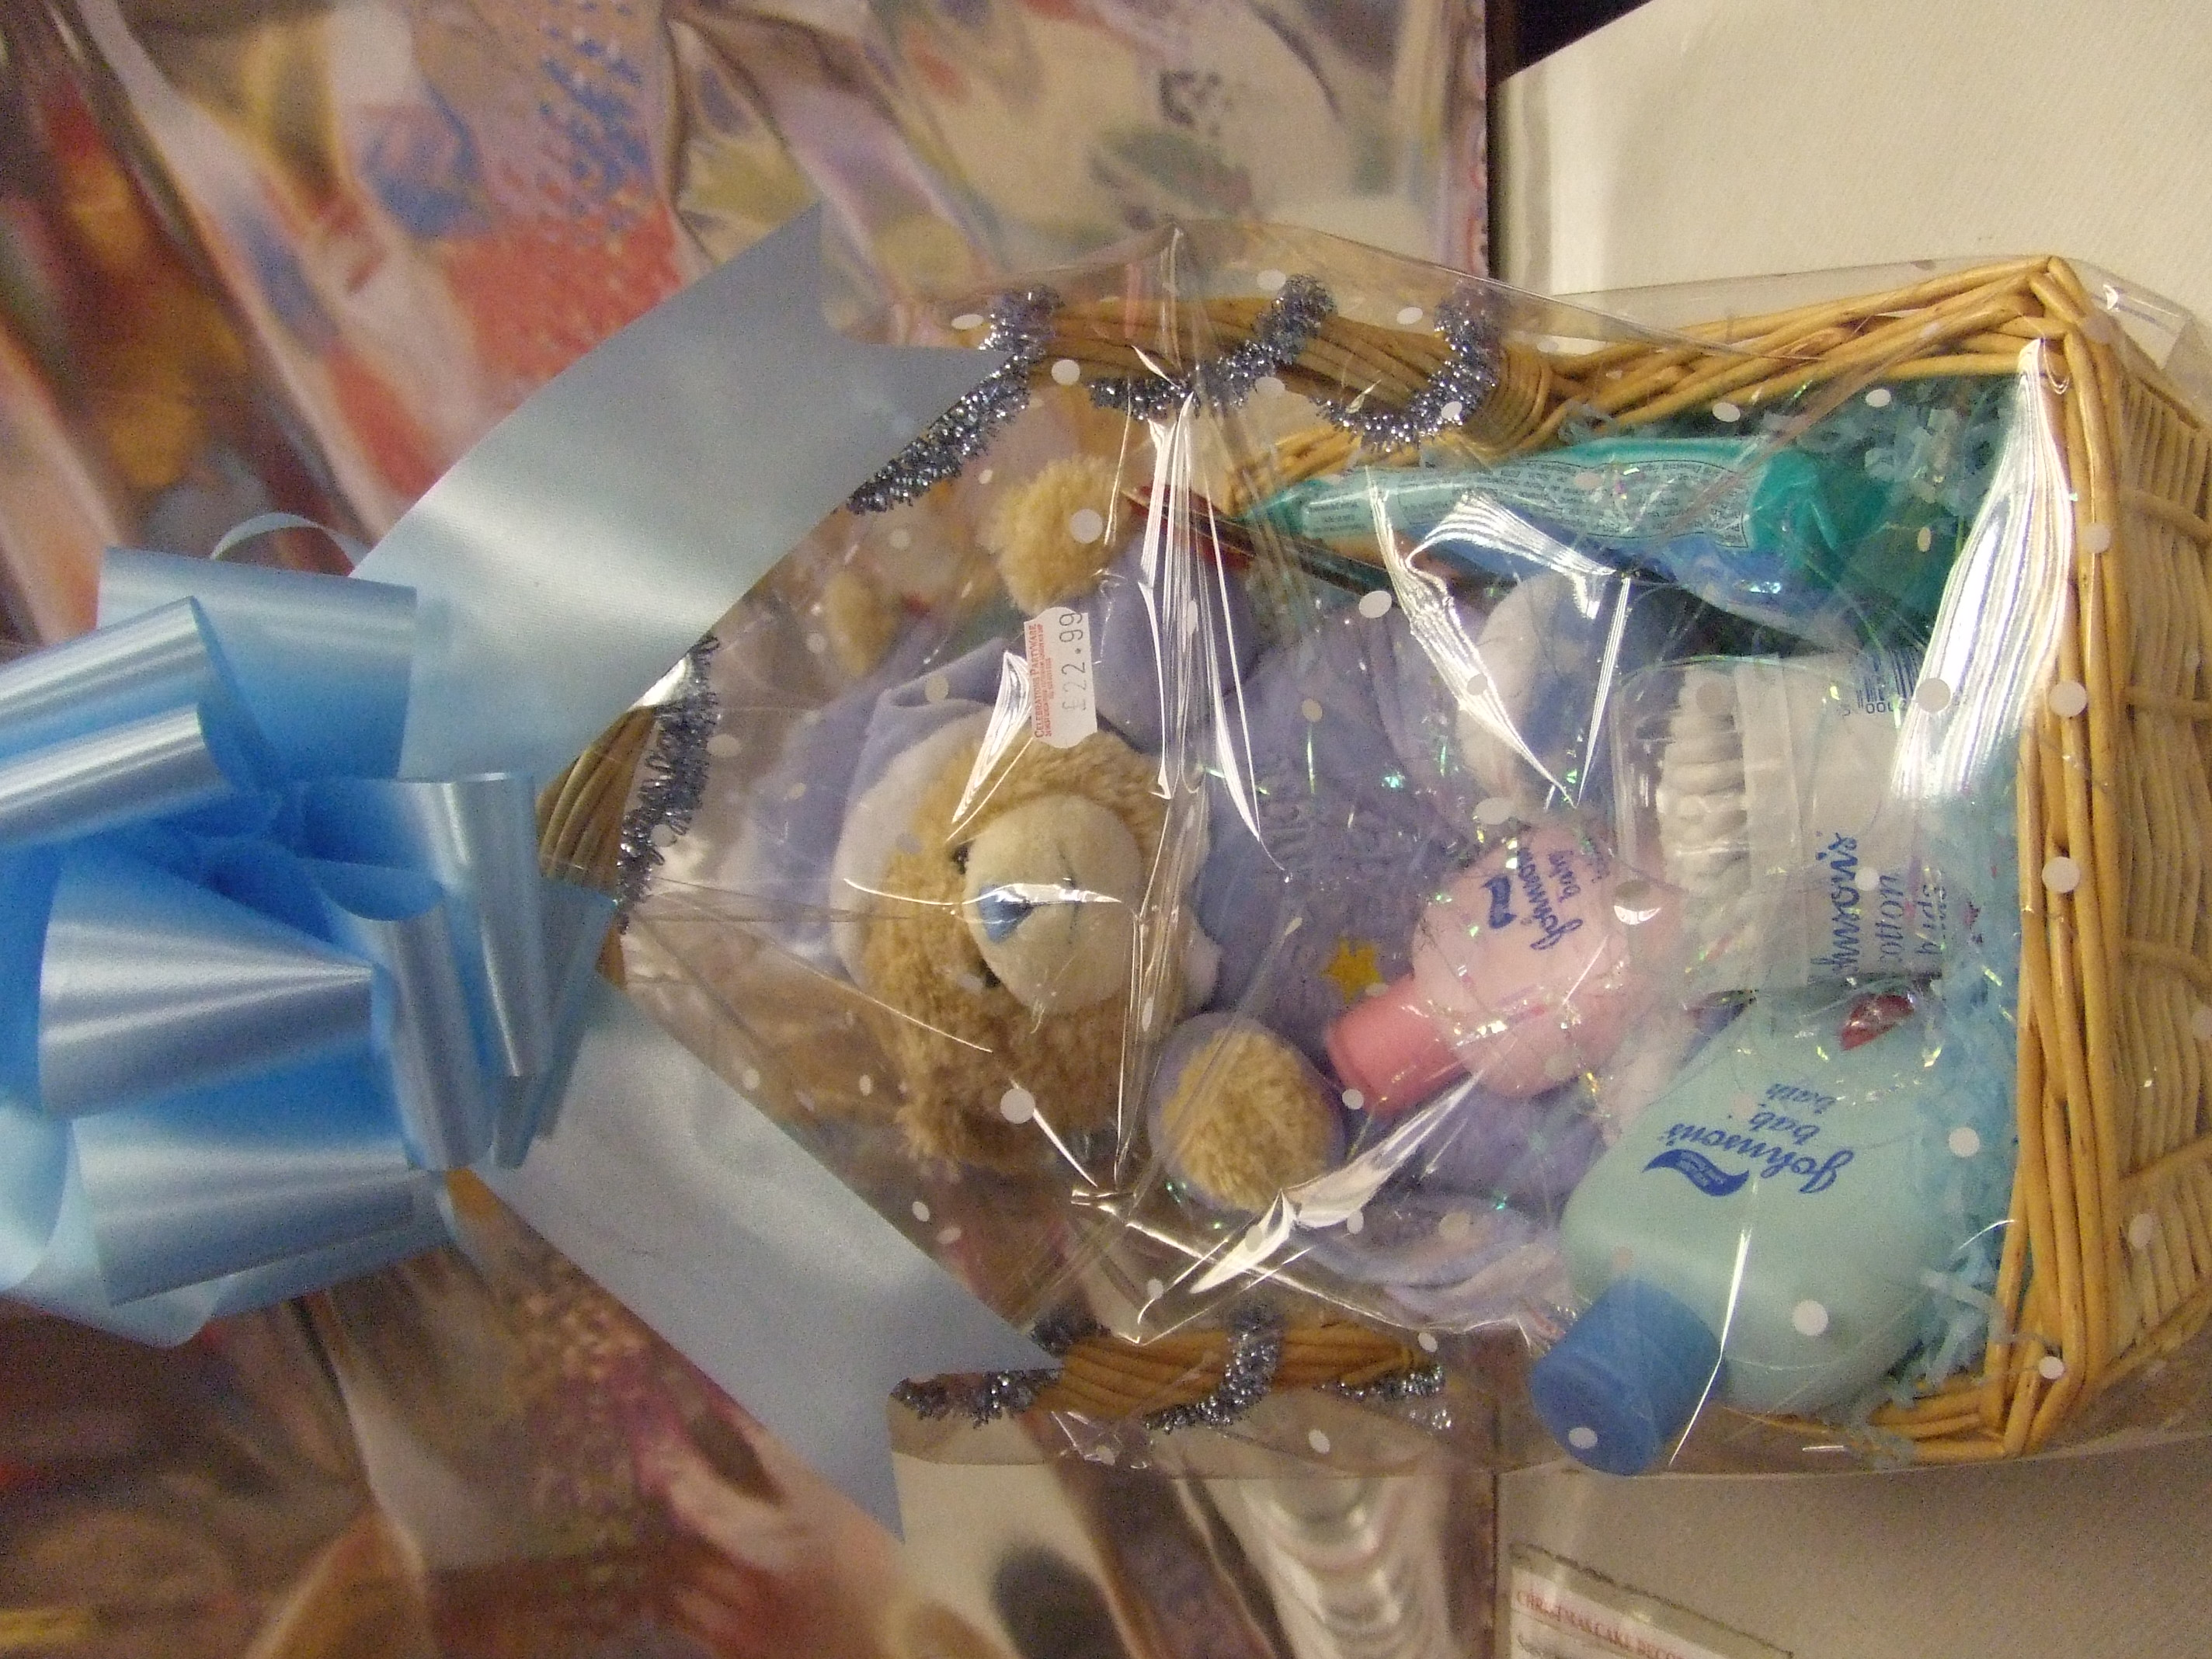 Baby Gift Baskets London England : Celebration partyware and gifts london